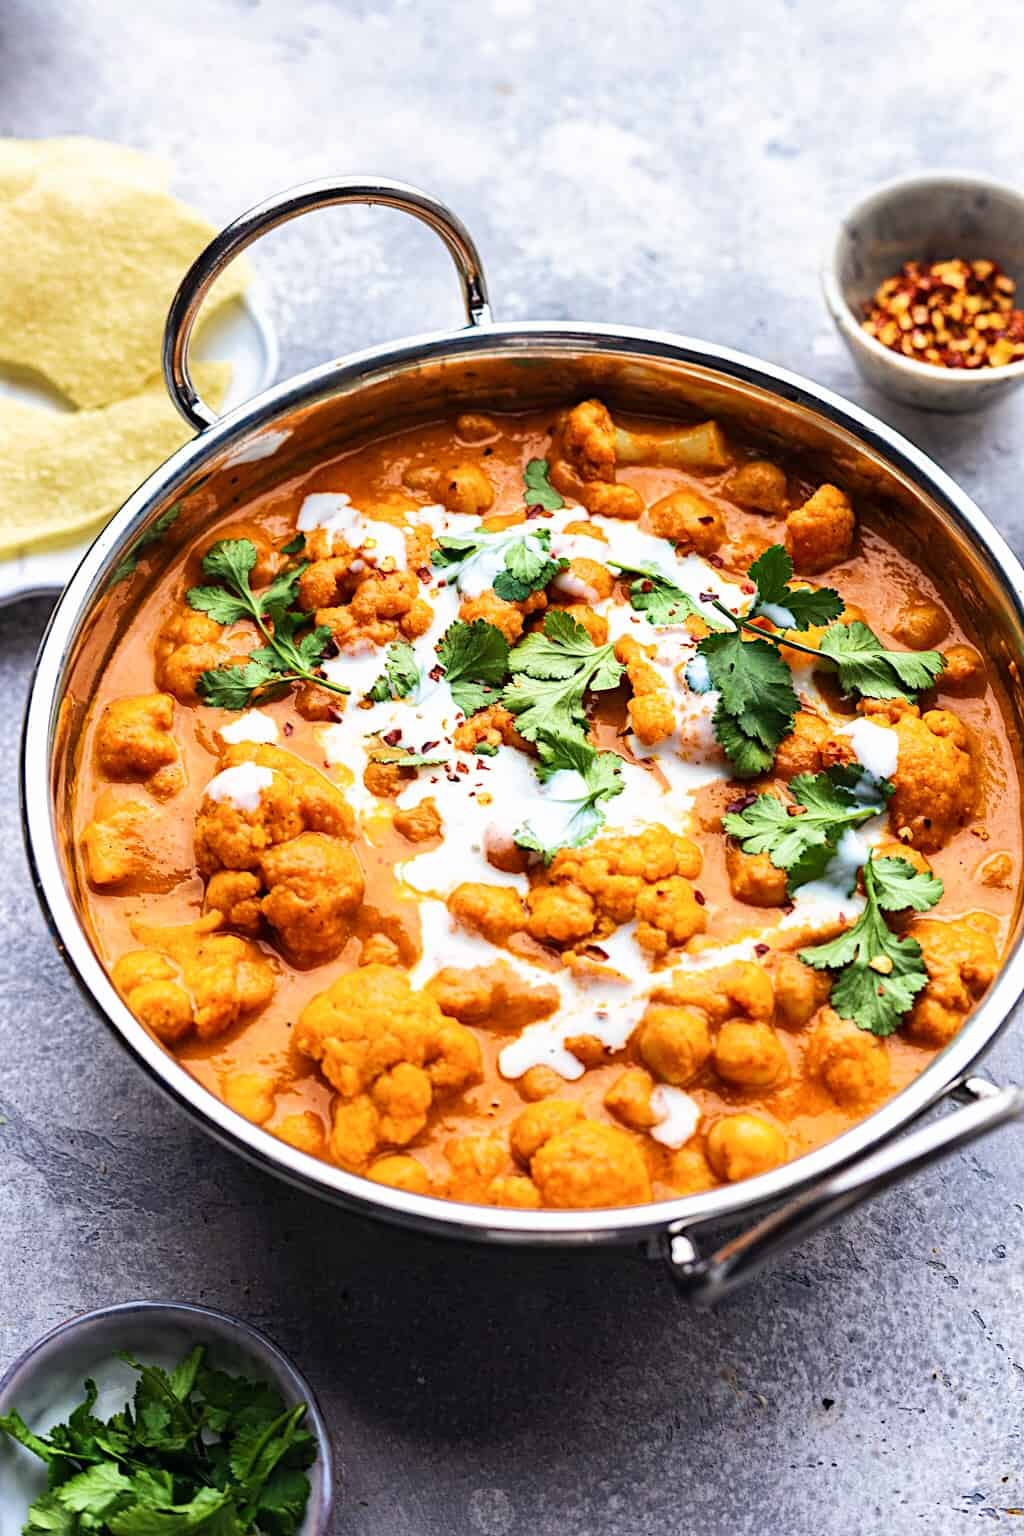 Vegan Cauliflower and Chickpea Curry #curry #cauliflower #chickpea #vegan #healthy #creamy